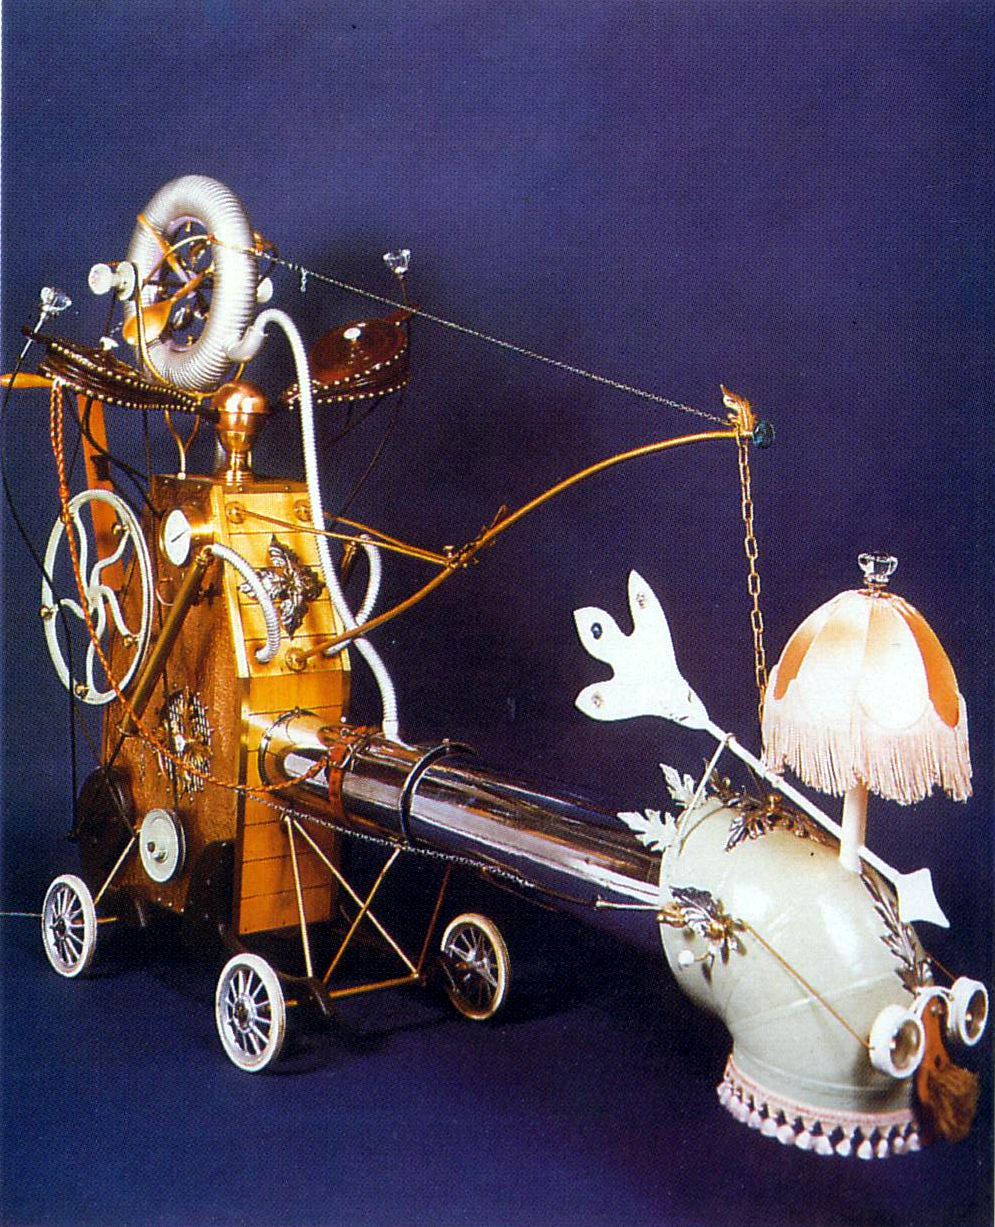 """Relive your childhood by celebrating 50th anniversary of """"Chitty Chitty Bang Bang"""""""